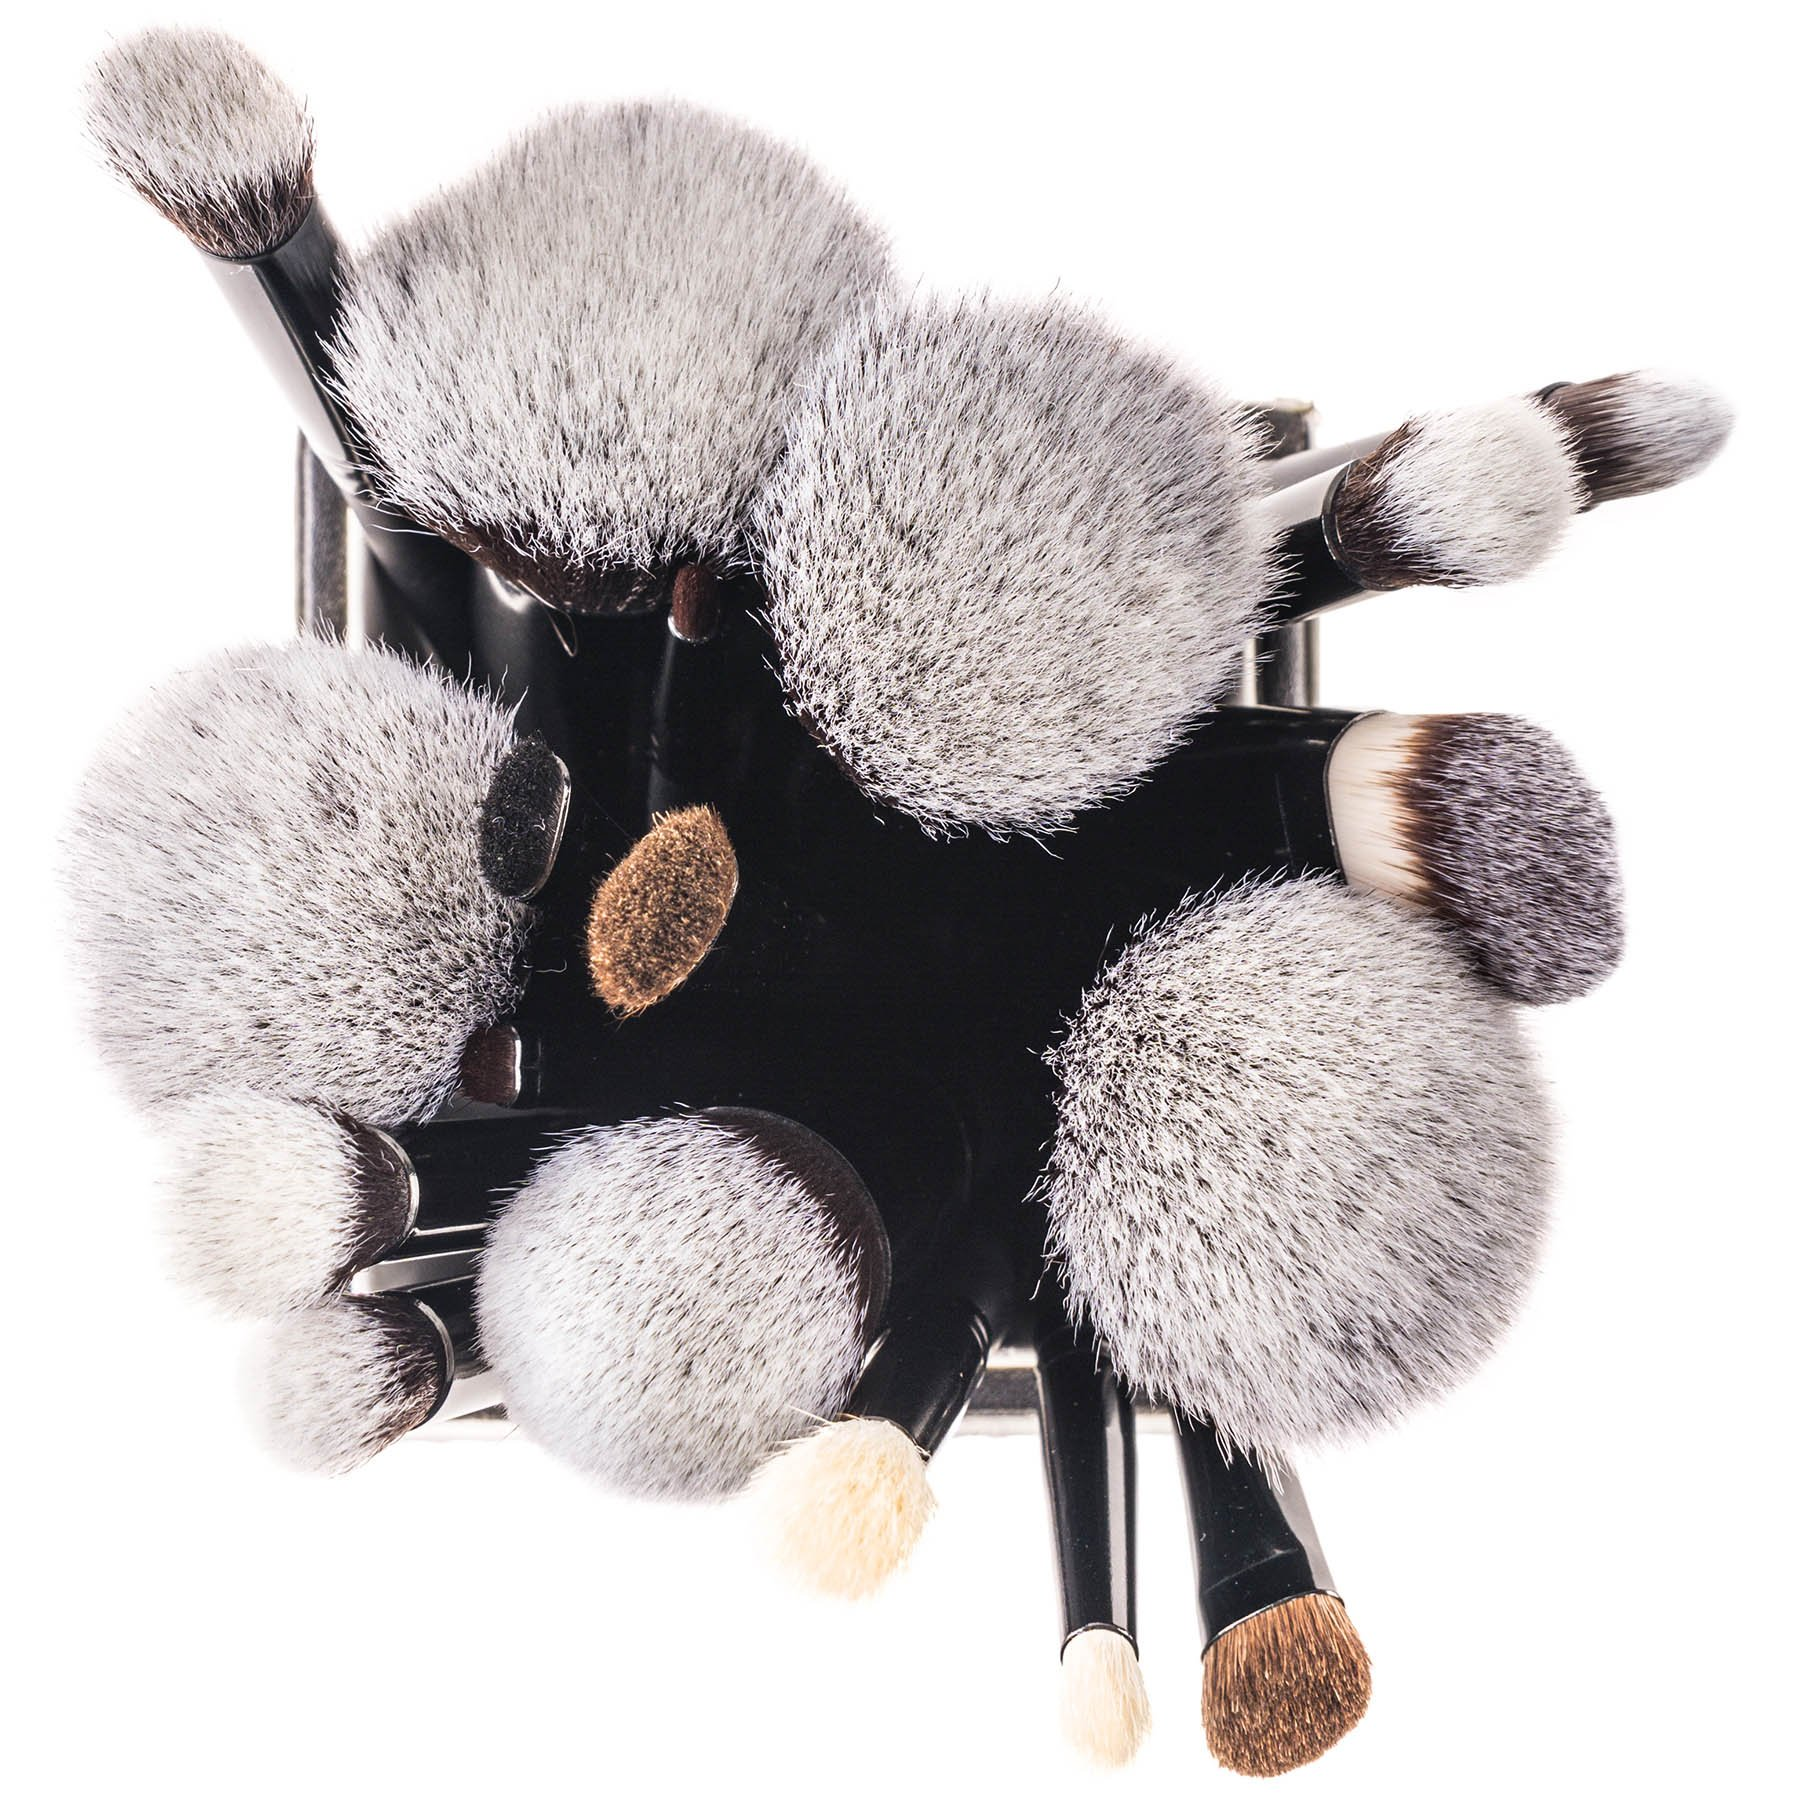 SHANY Artisan's Easel 18 Piece Elite Cosmetics Brush Collection, Black by SHANY Cosmetics (Image #7)